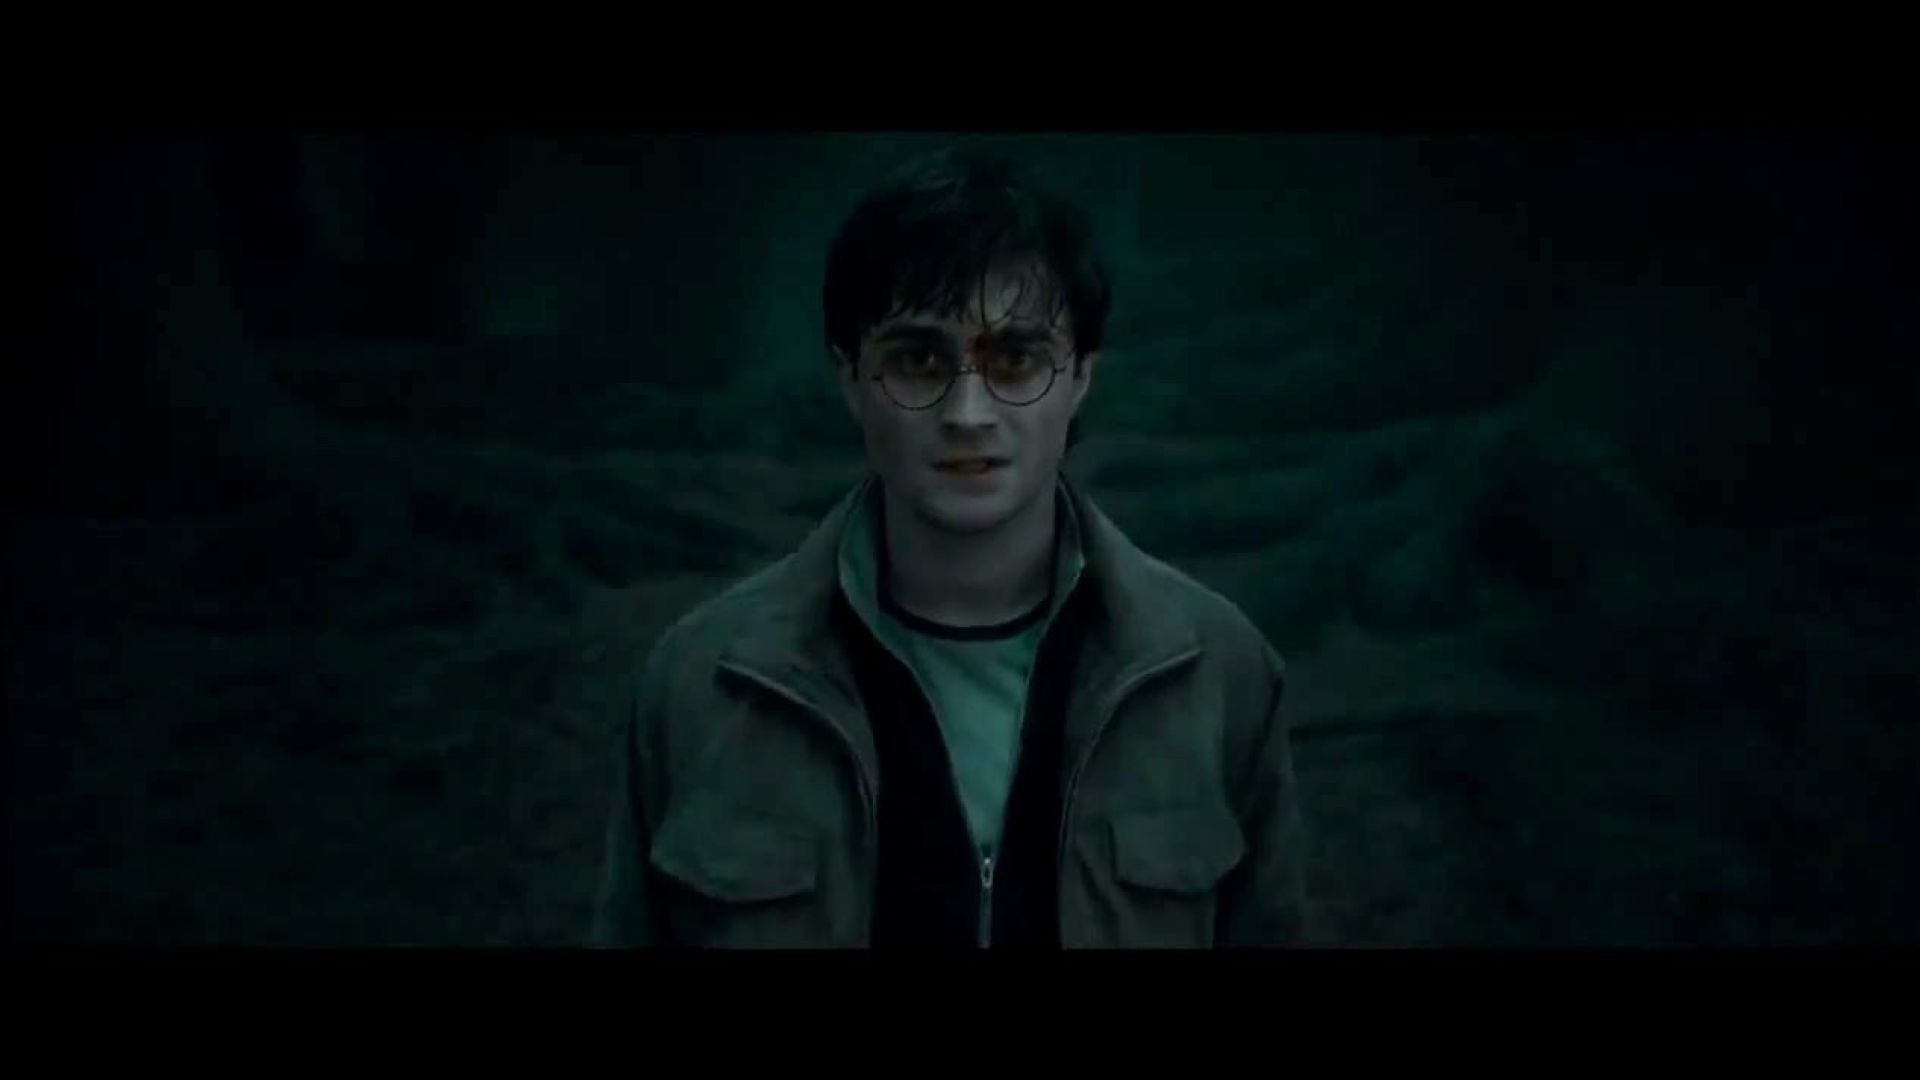 Harry Potter and the Deathly Hallows Part 2 cast talks about the final story